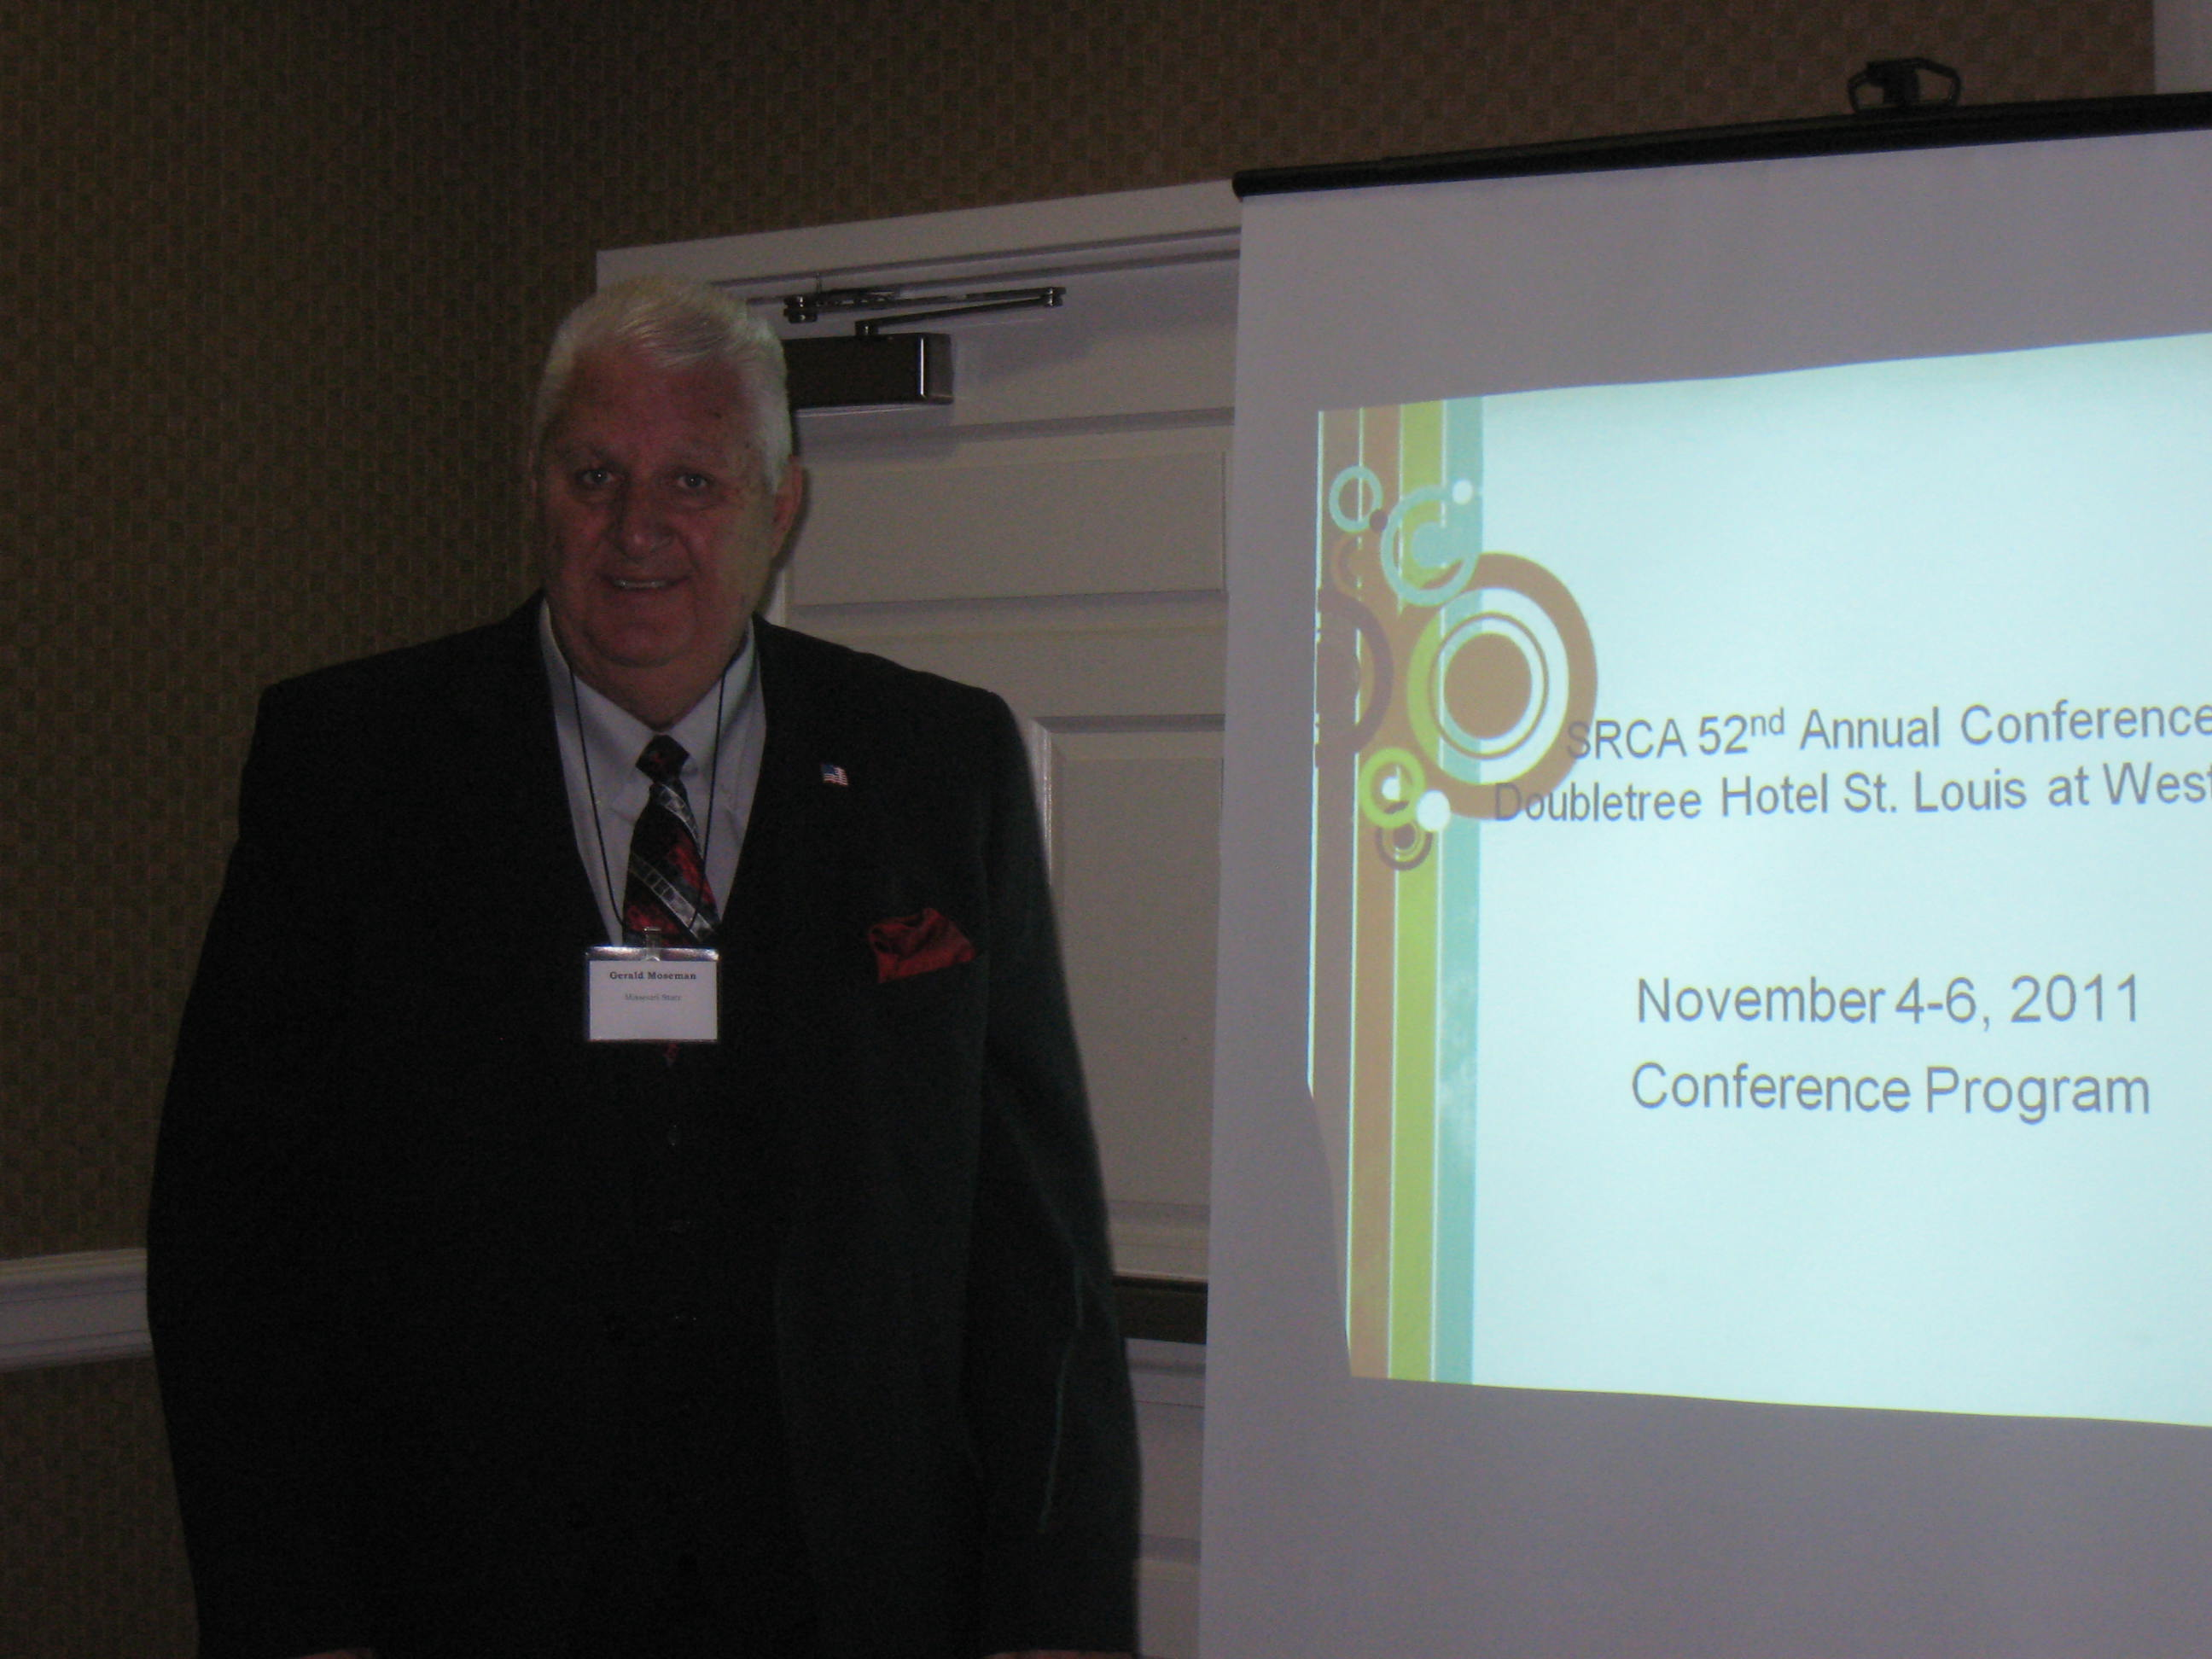 Moseman Presents at Regional Conference on Educational Administration